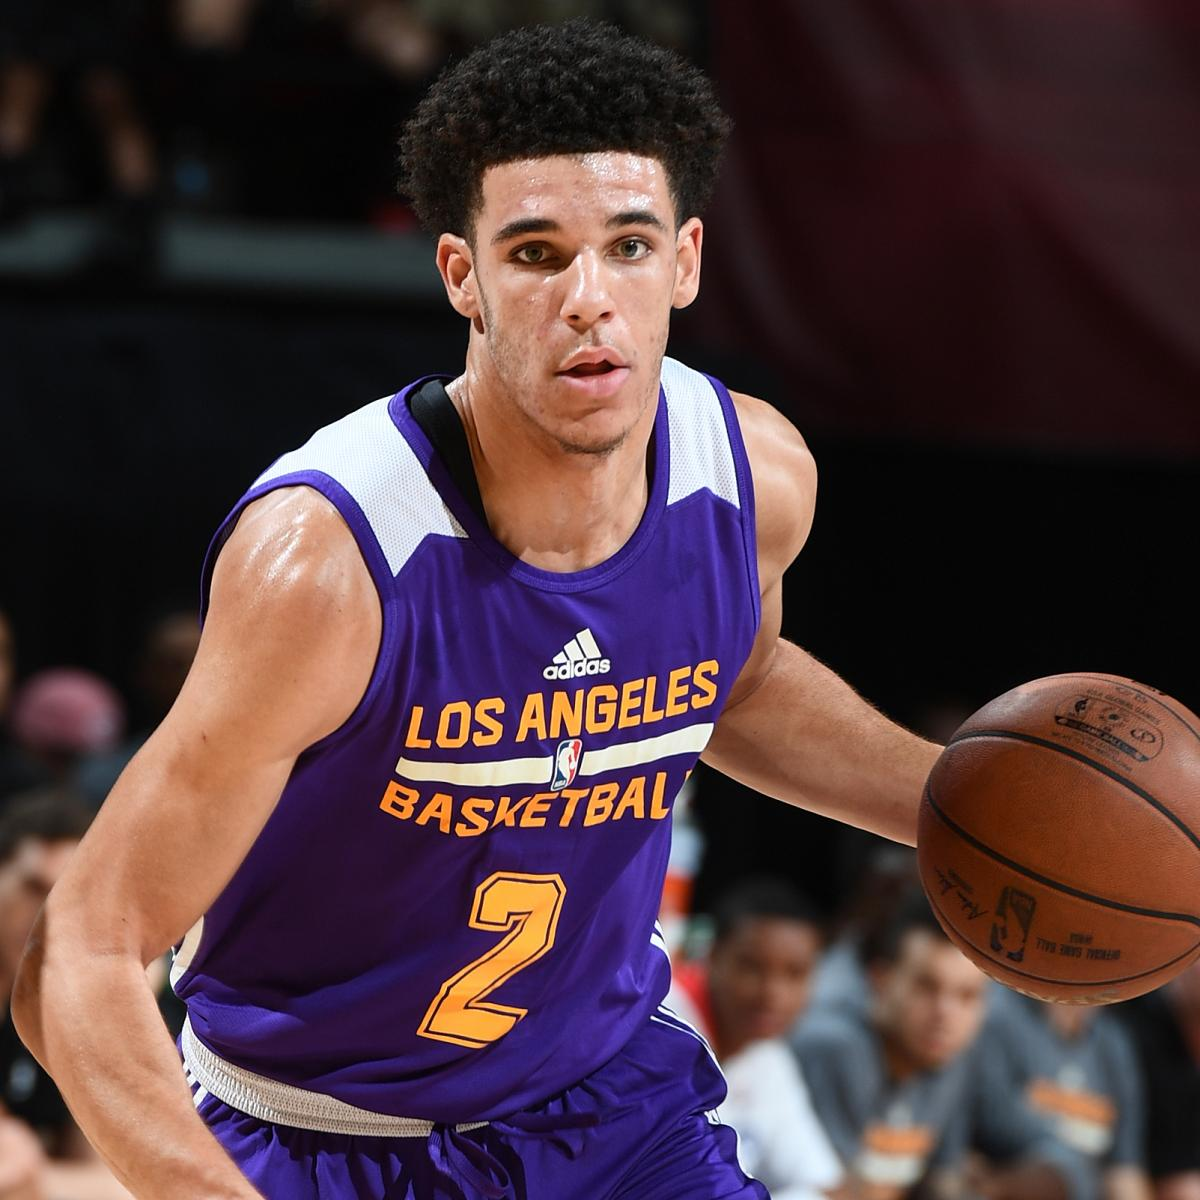 82-Game NBA Summer League 2018 Schedule Released